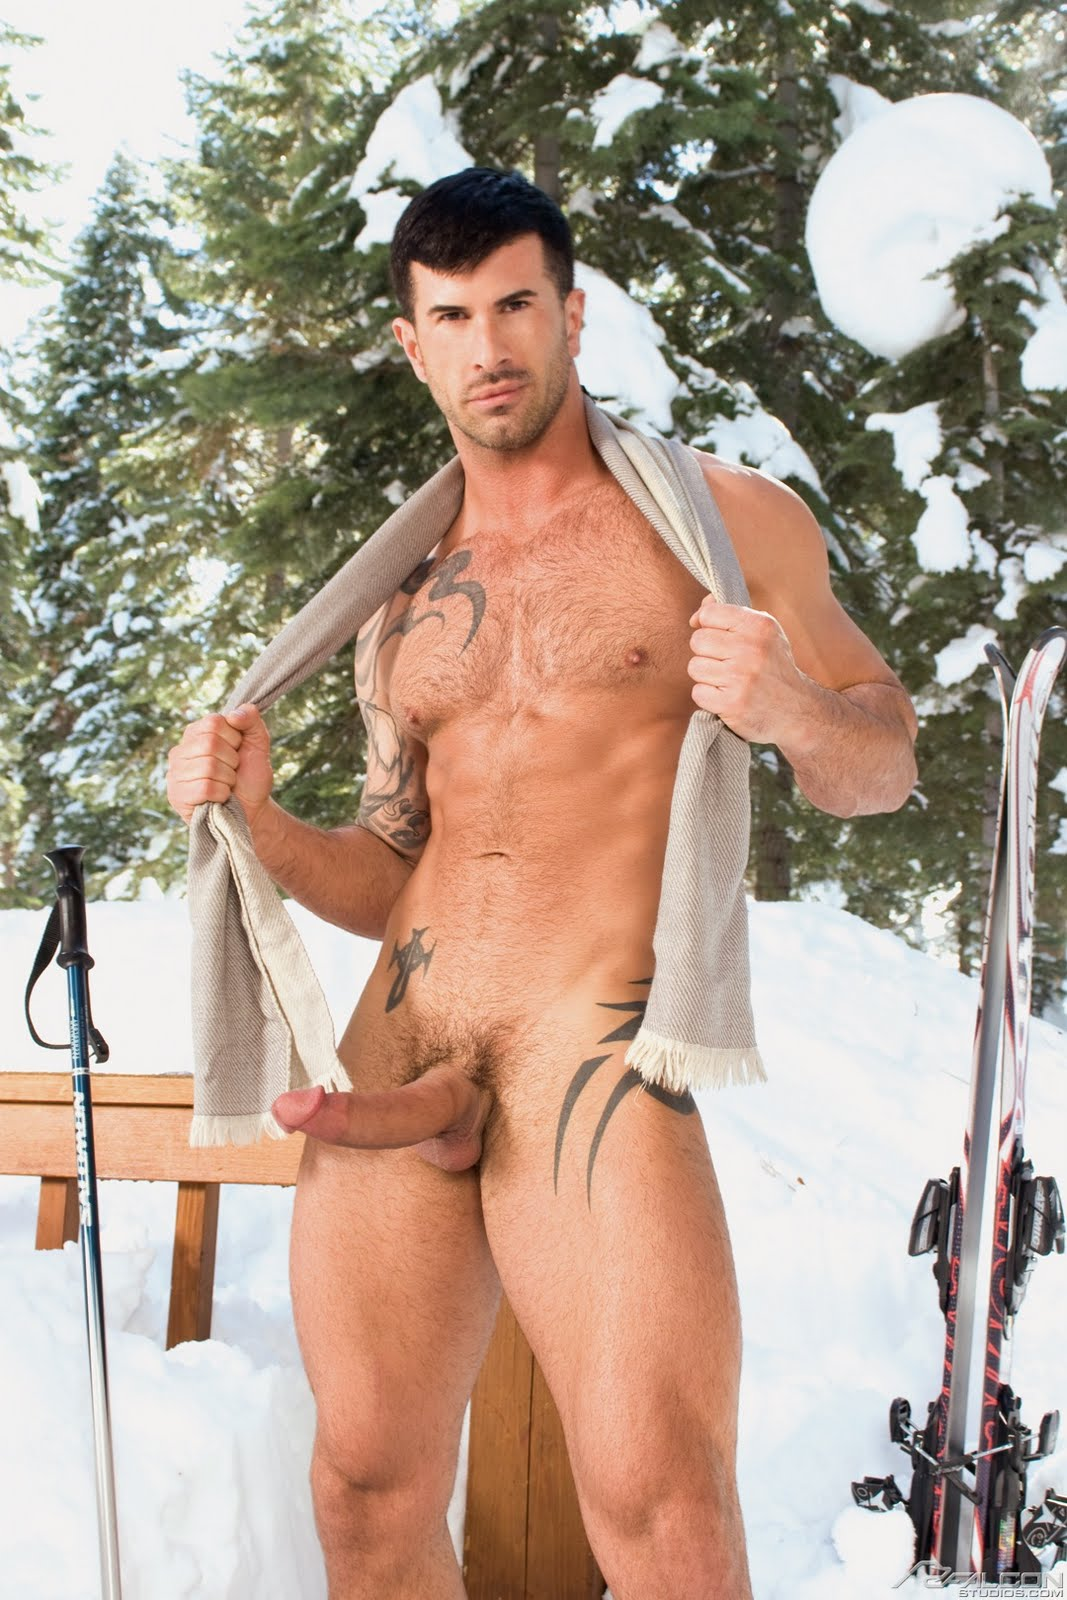 Hot Pictures Of Naked Men Snow